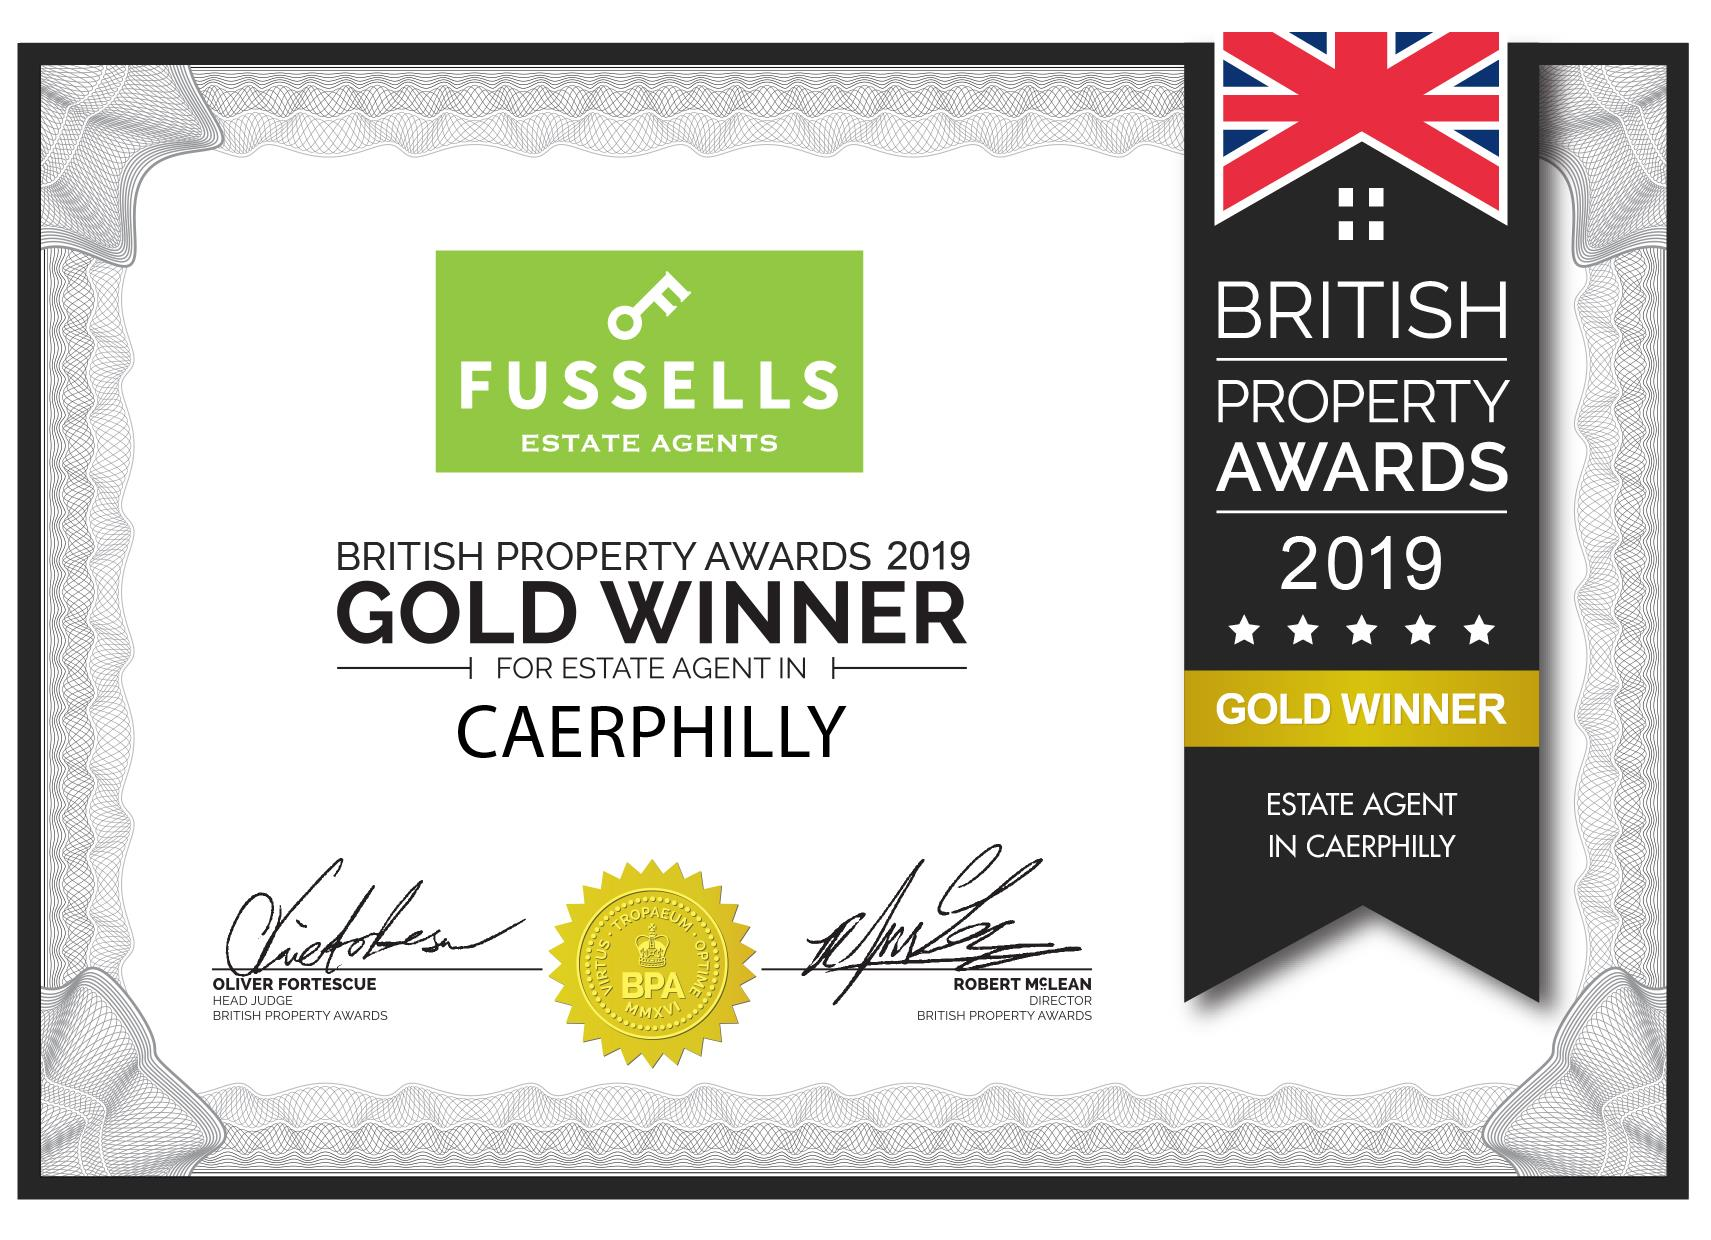 Fussells are a winner in the British Property Awards 2019!